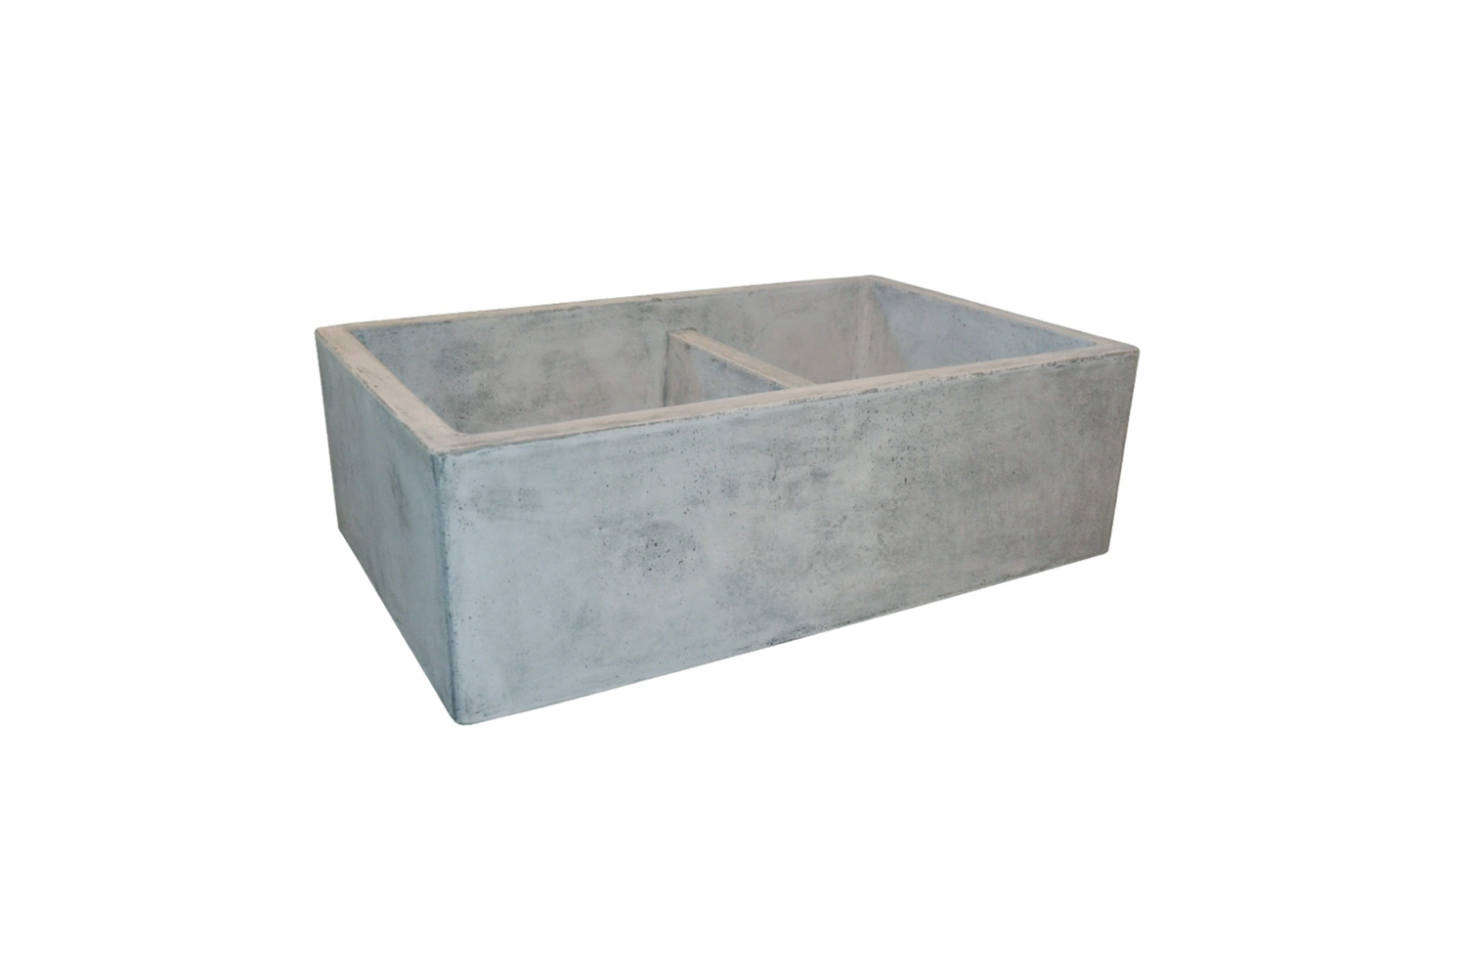 The Native Trails Farmhouse 33-Inch Double Bowl Kitchen Sink is an off-the-shelf alternative to the unique antique soapstone laundry sink sourced for the kitchen here. This one is $1,474.49 at Overstock.com.